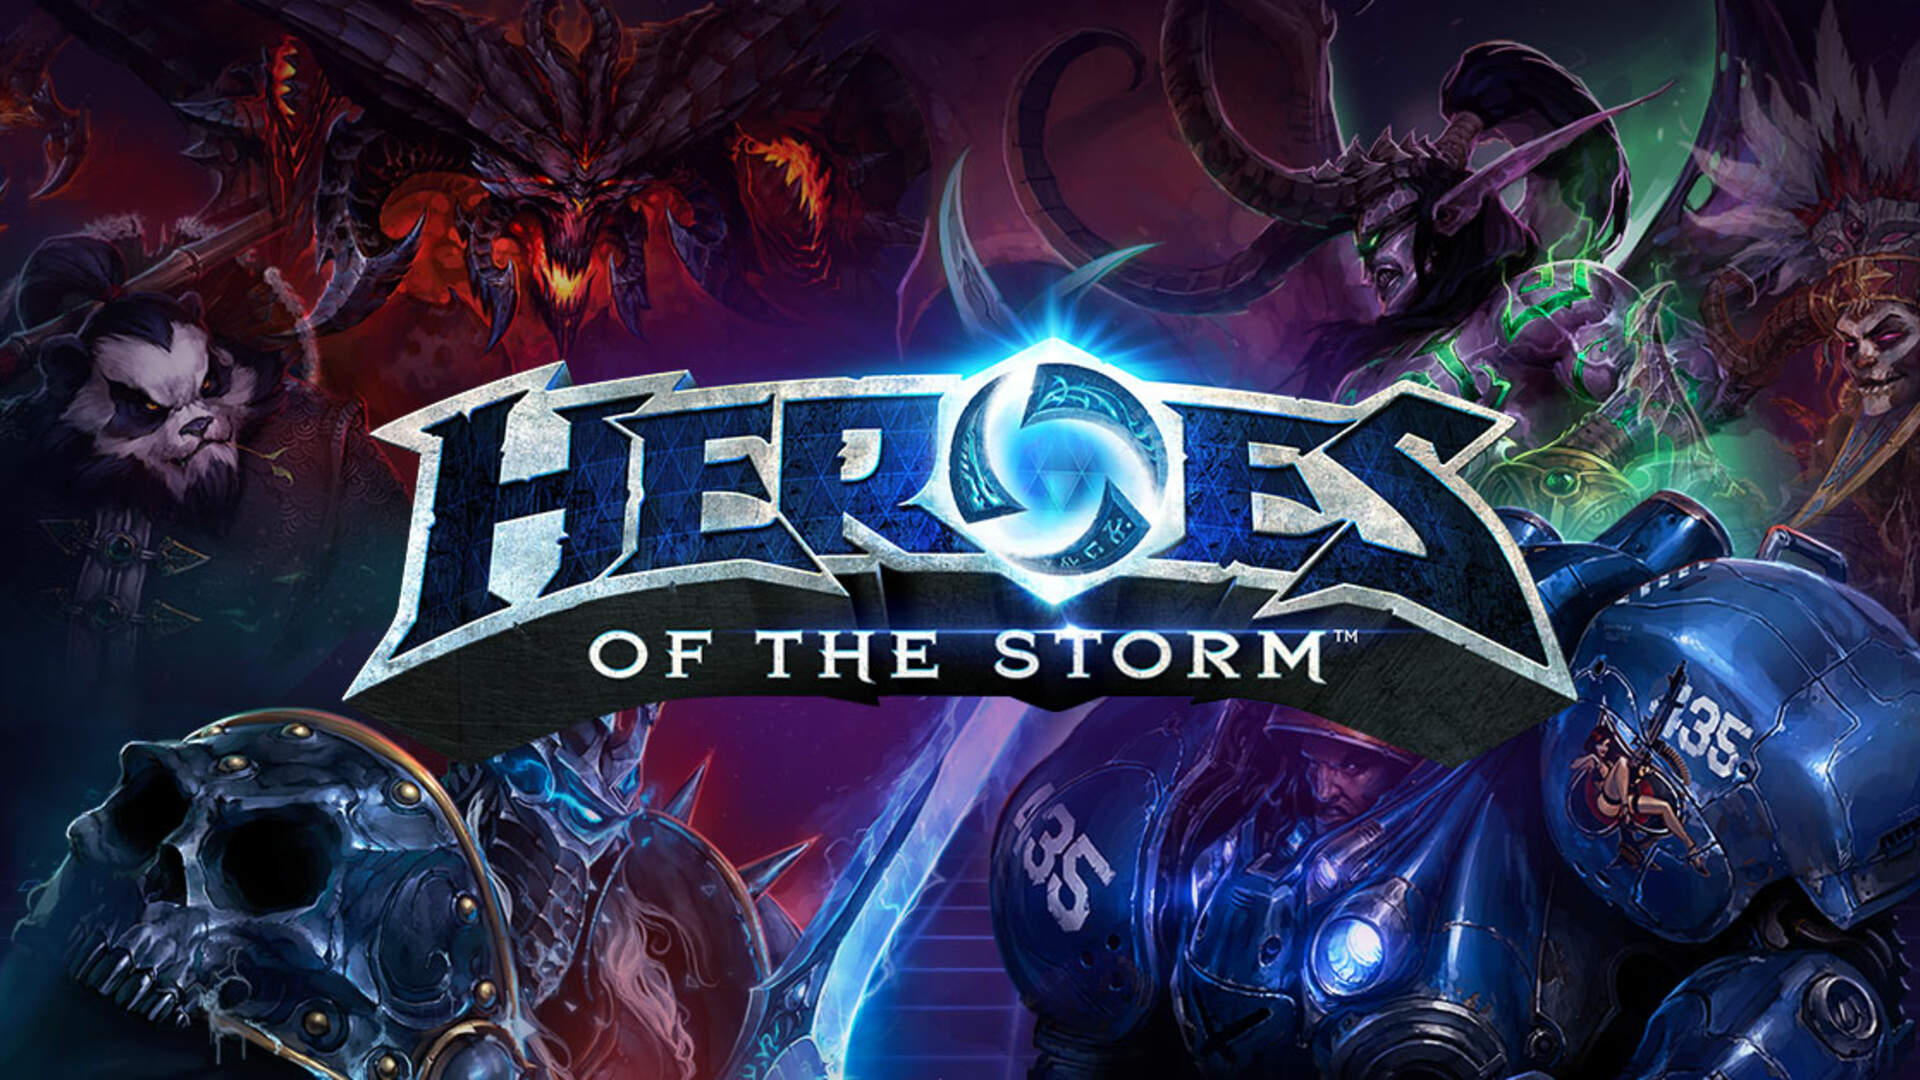 Support Your Favorite Heroes of the Storm Teams Financially by Cheering for Them on Twitch